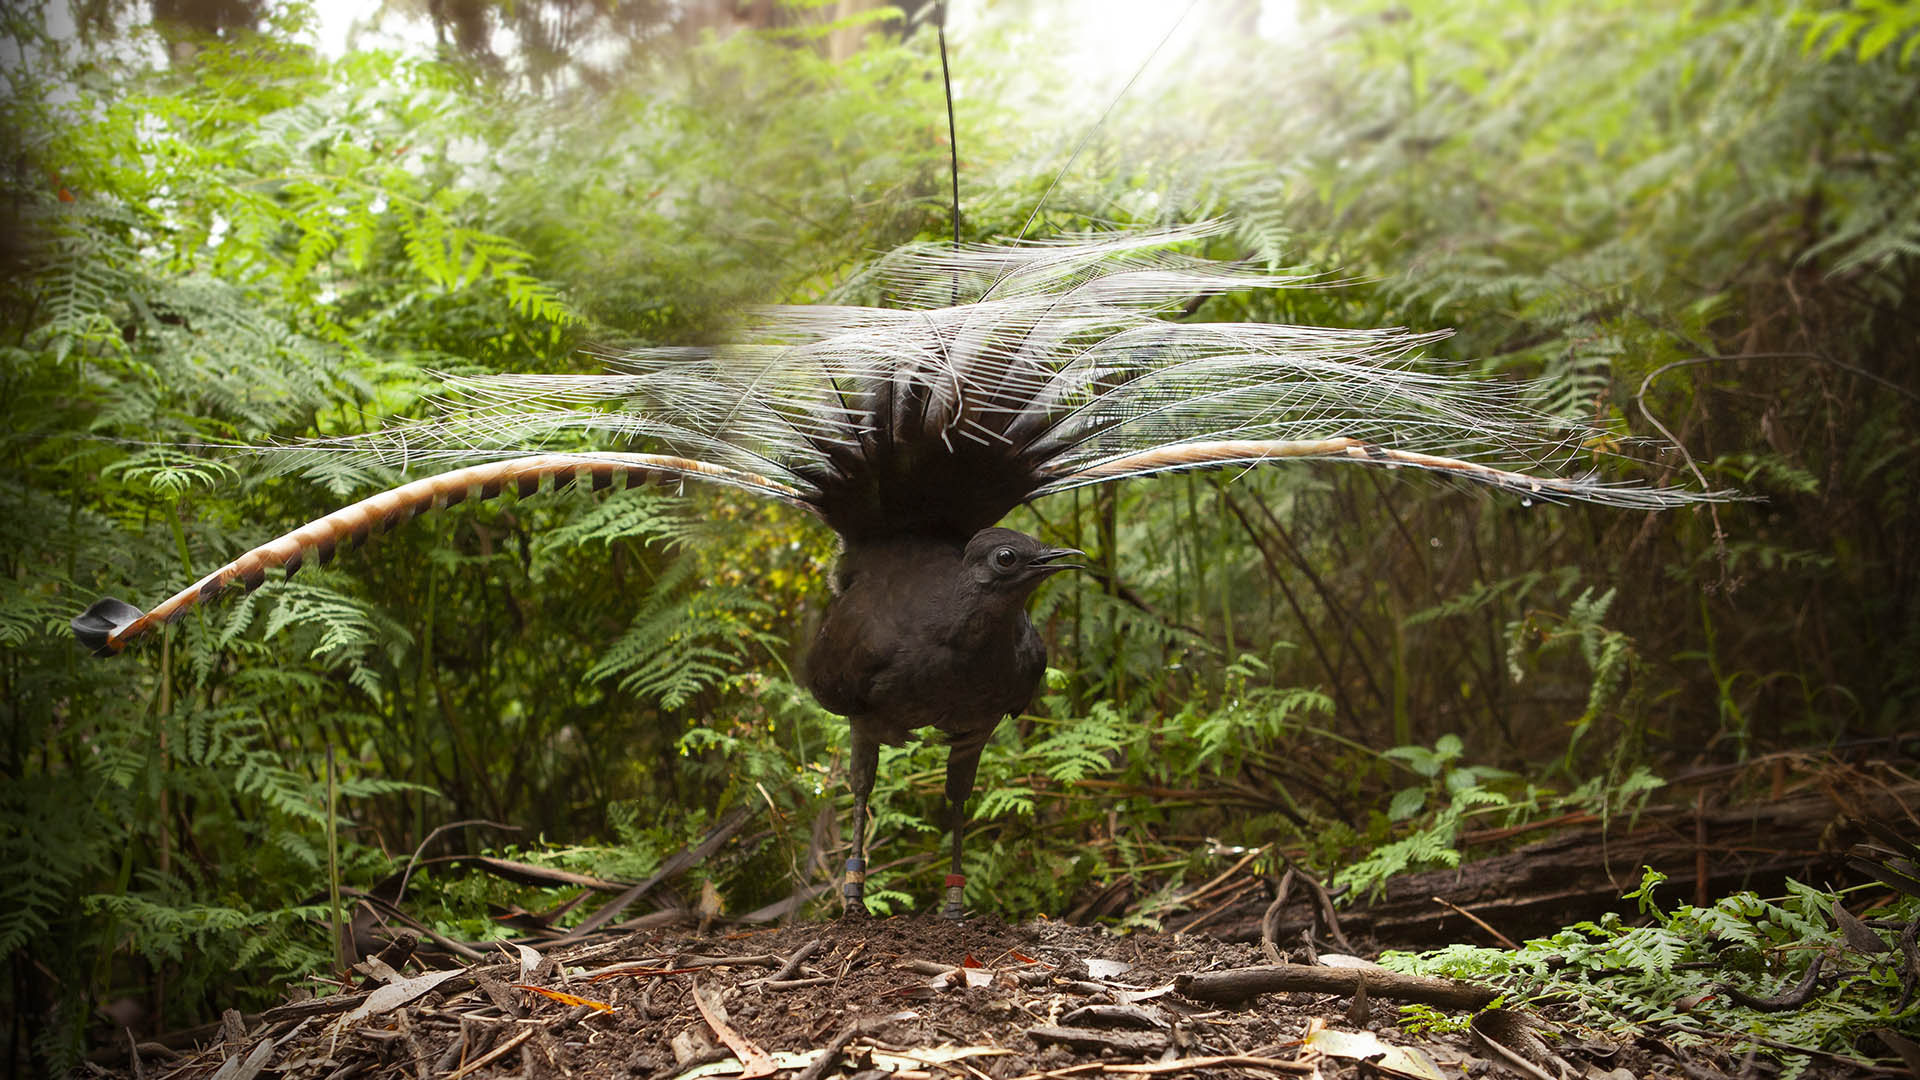 Masters of mimicry, male lyrebirds use their skill to deceive potential mates